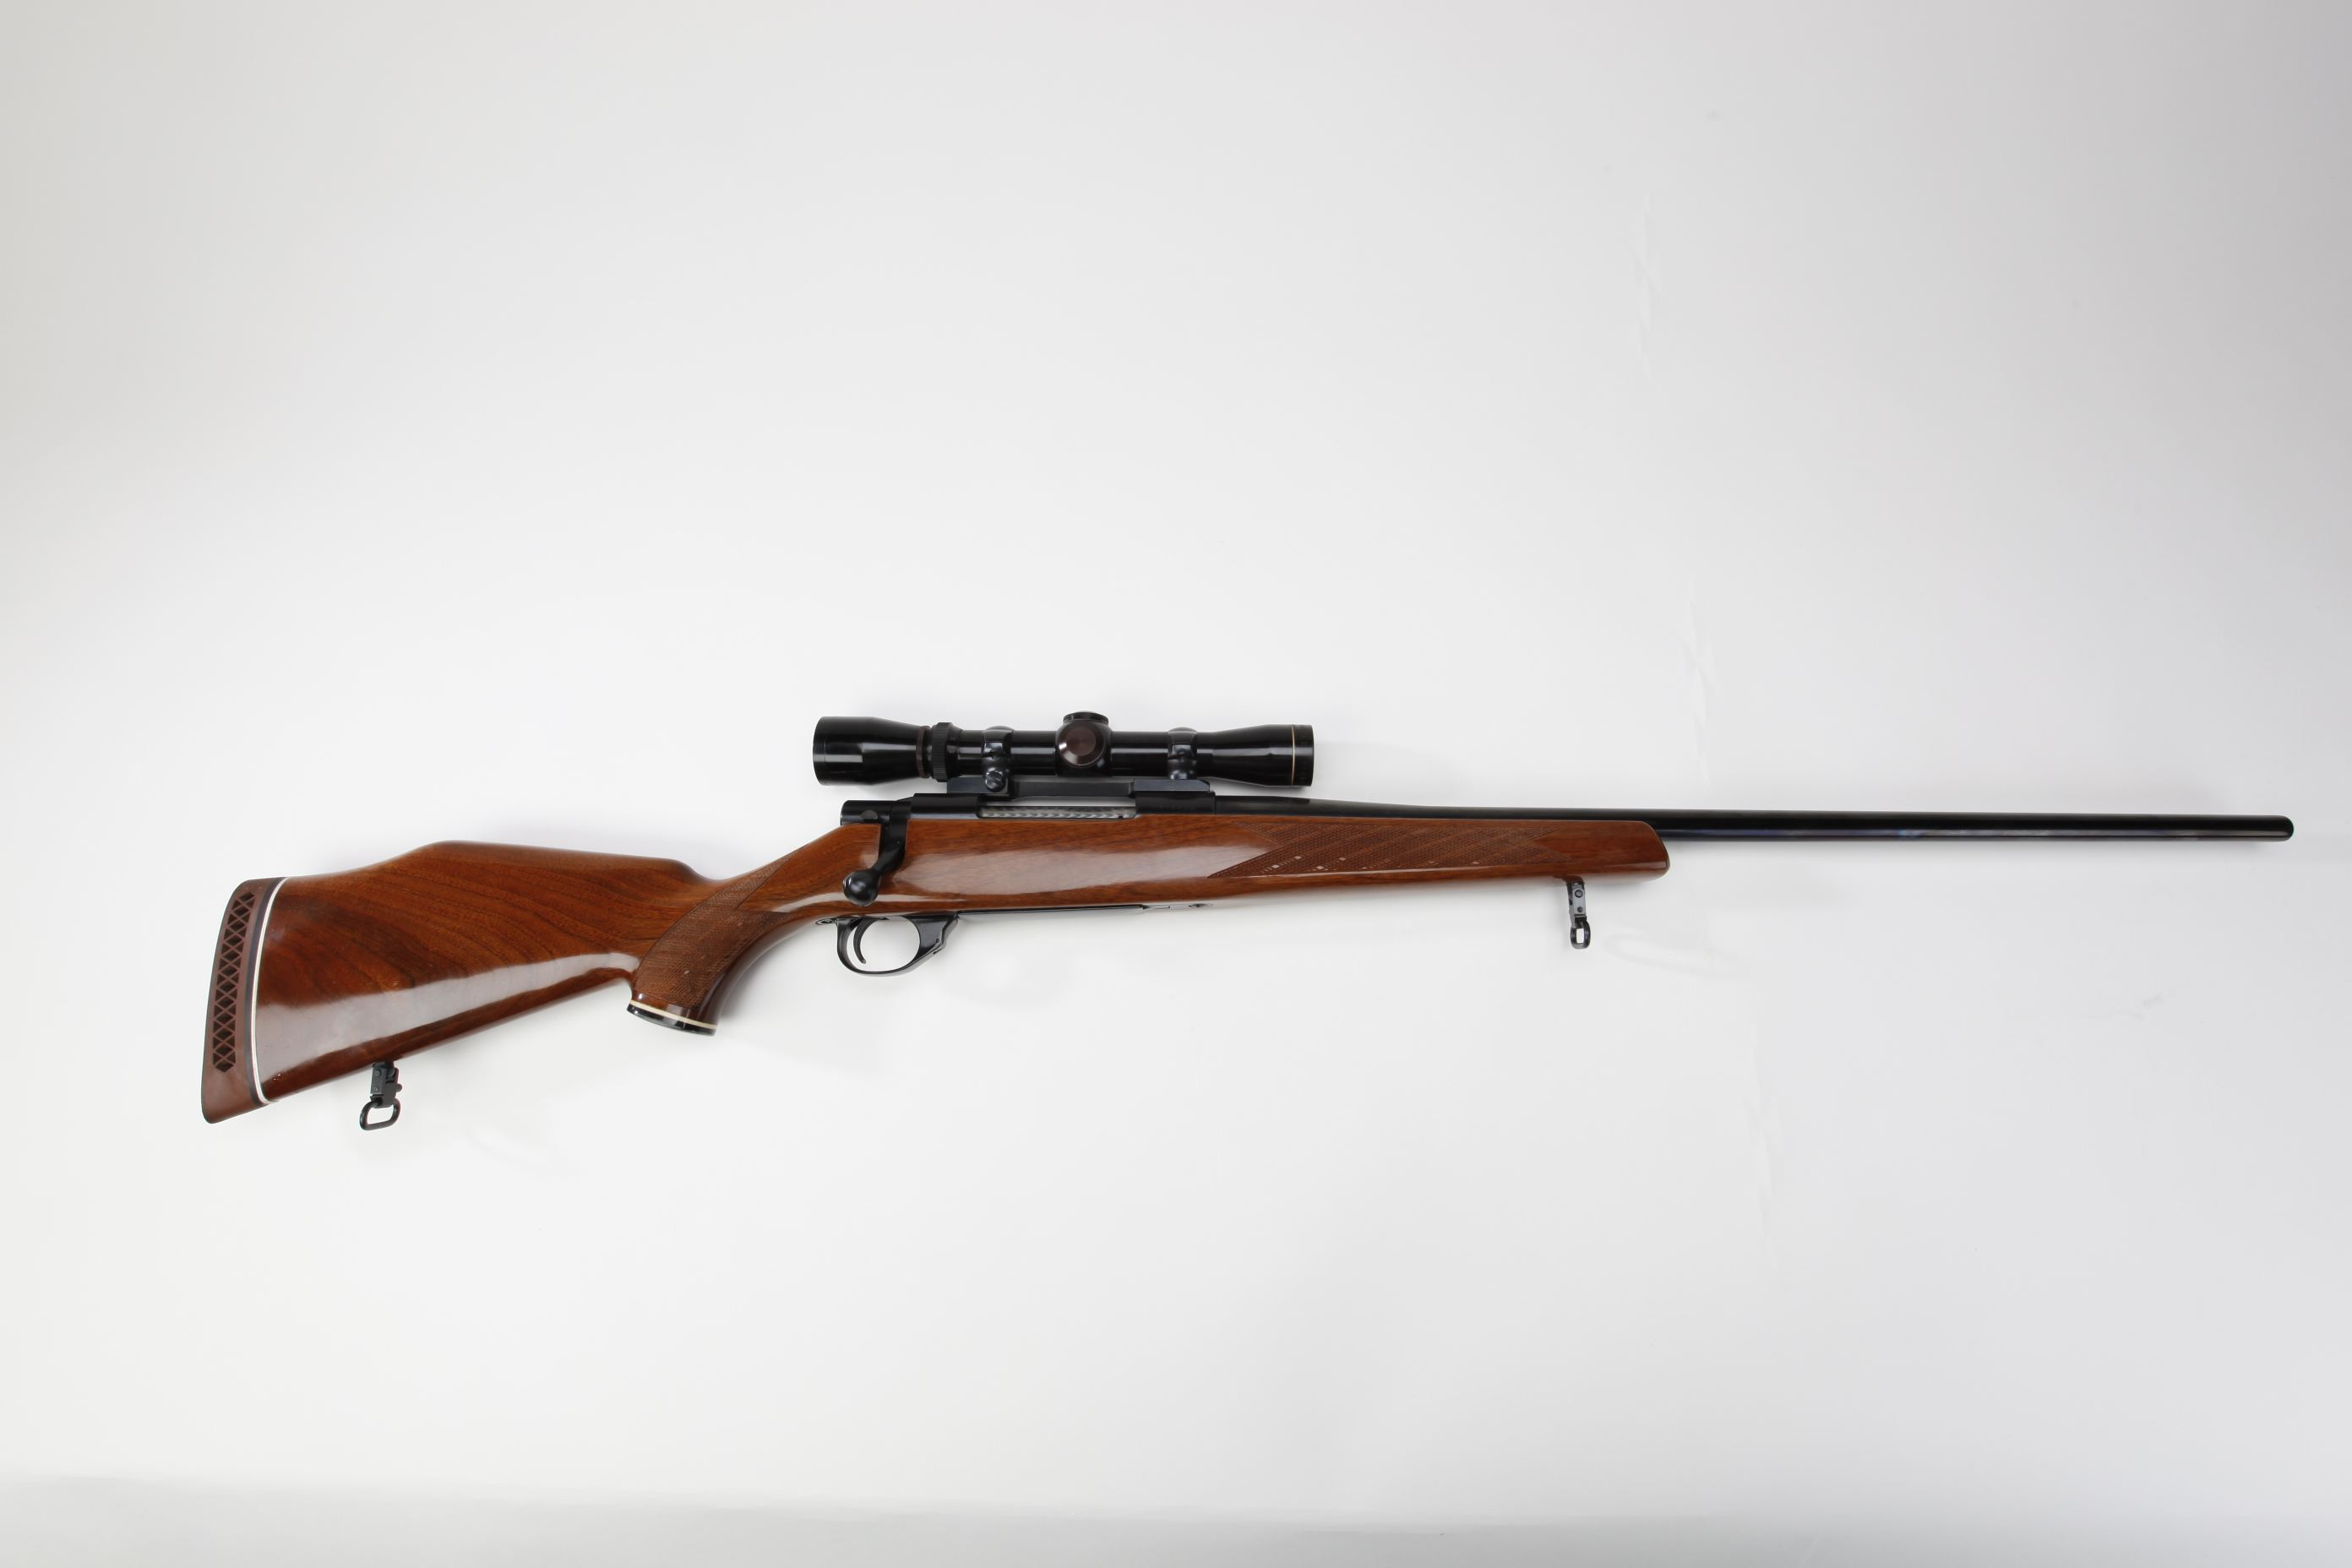 Smith and Wesson Model 1500 Rifle w Leupold scope